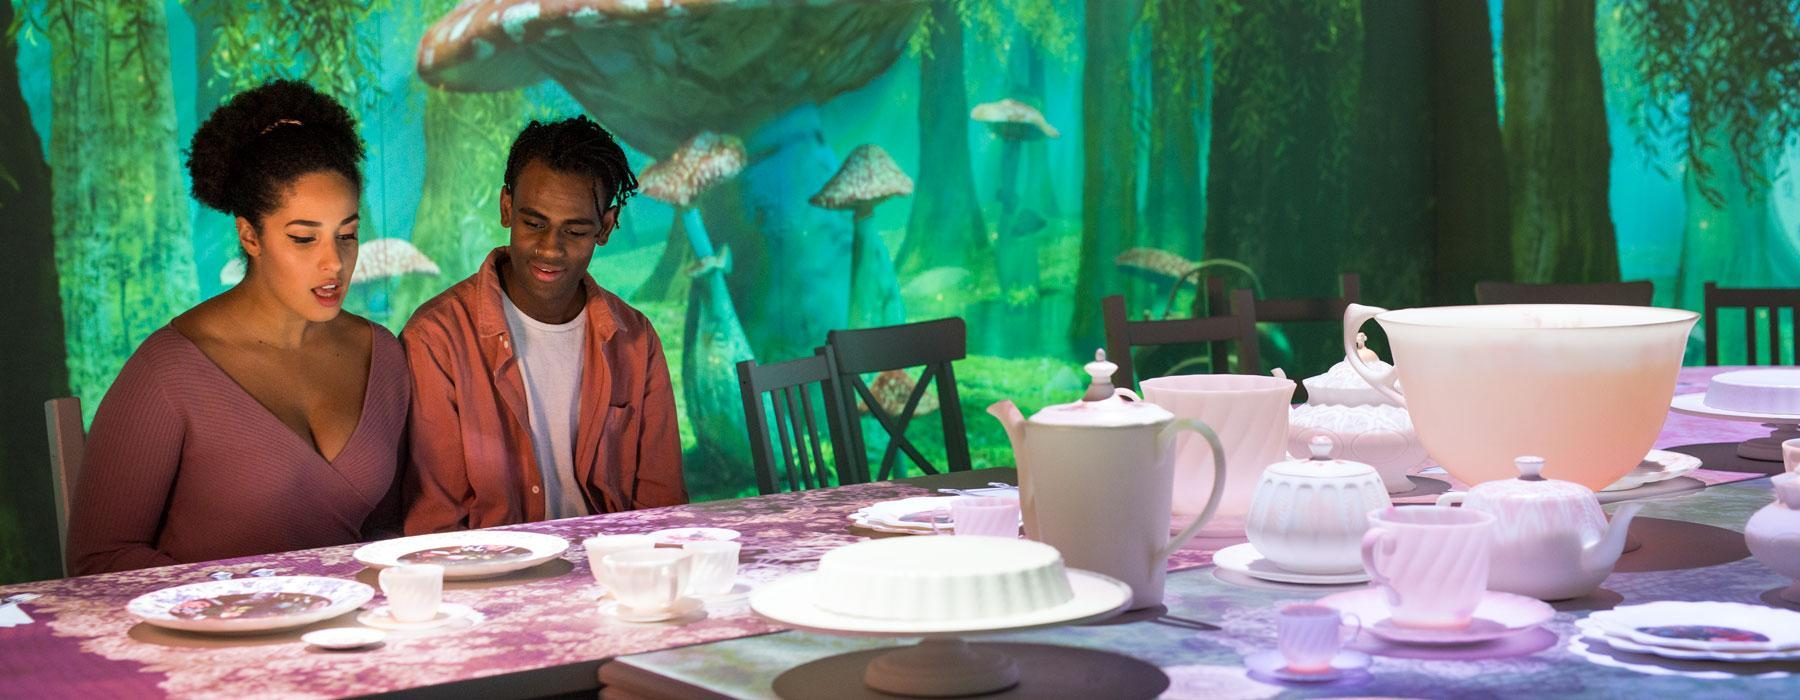 Two people sit at a table with a tea set on it. In the background are projected images of mushrooms and trees